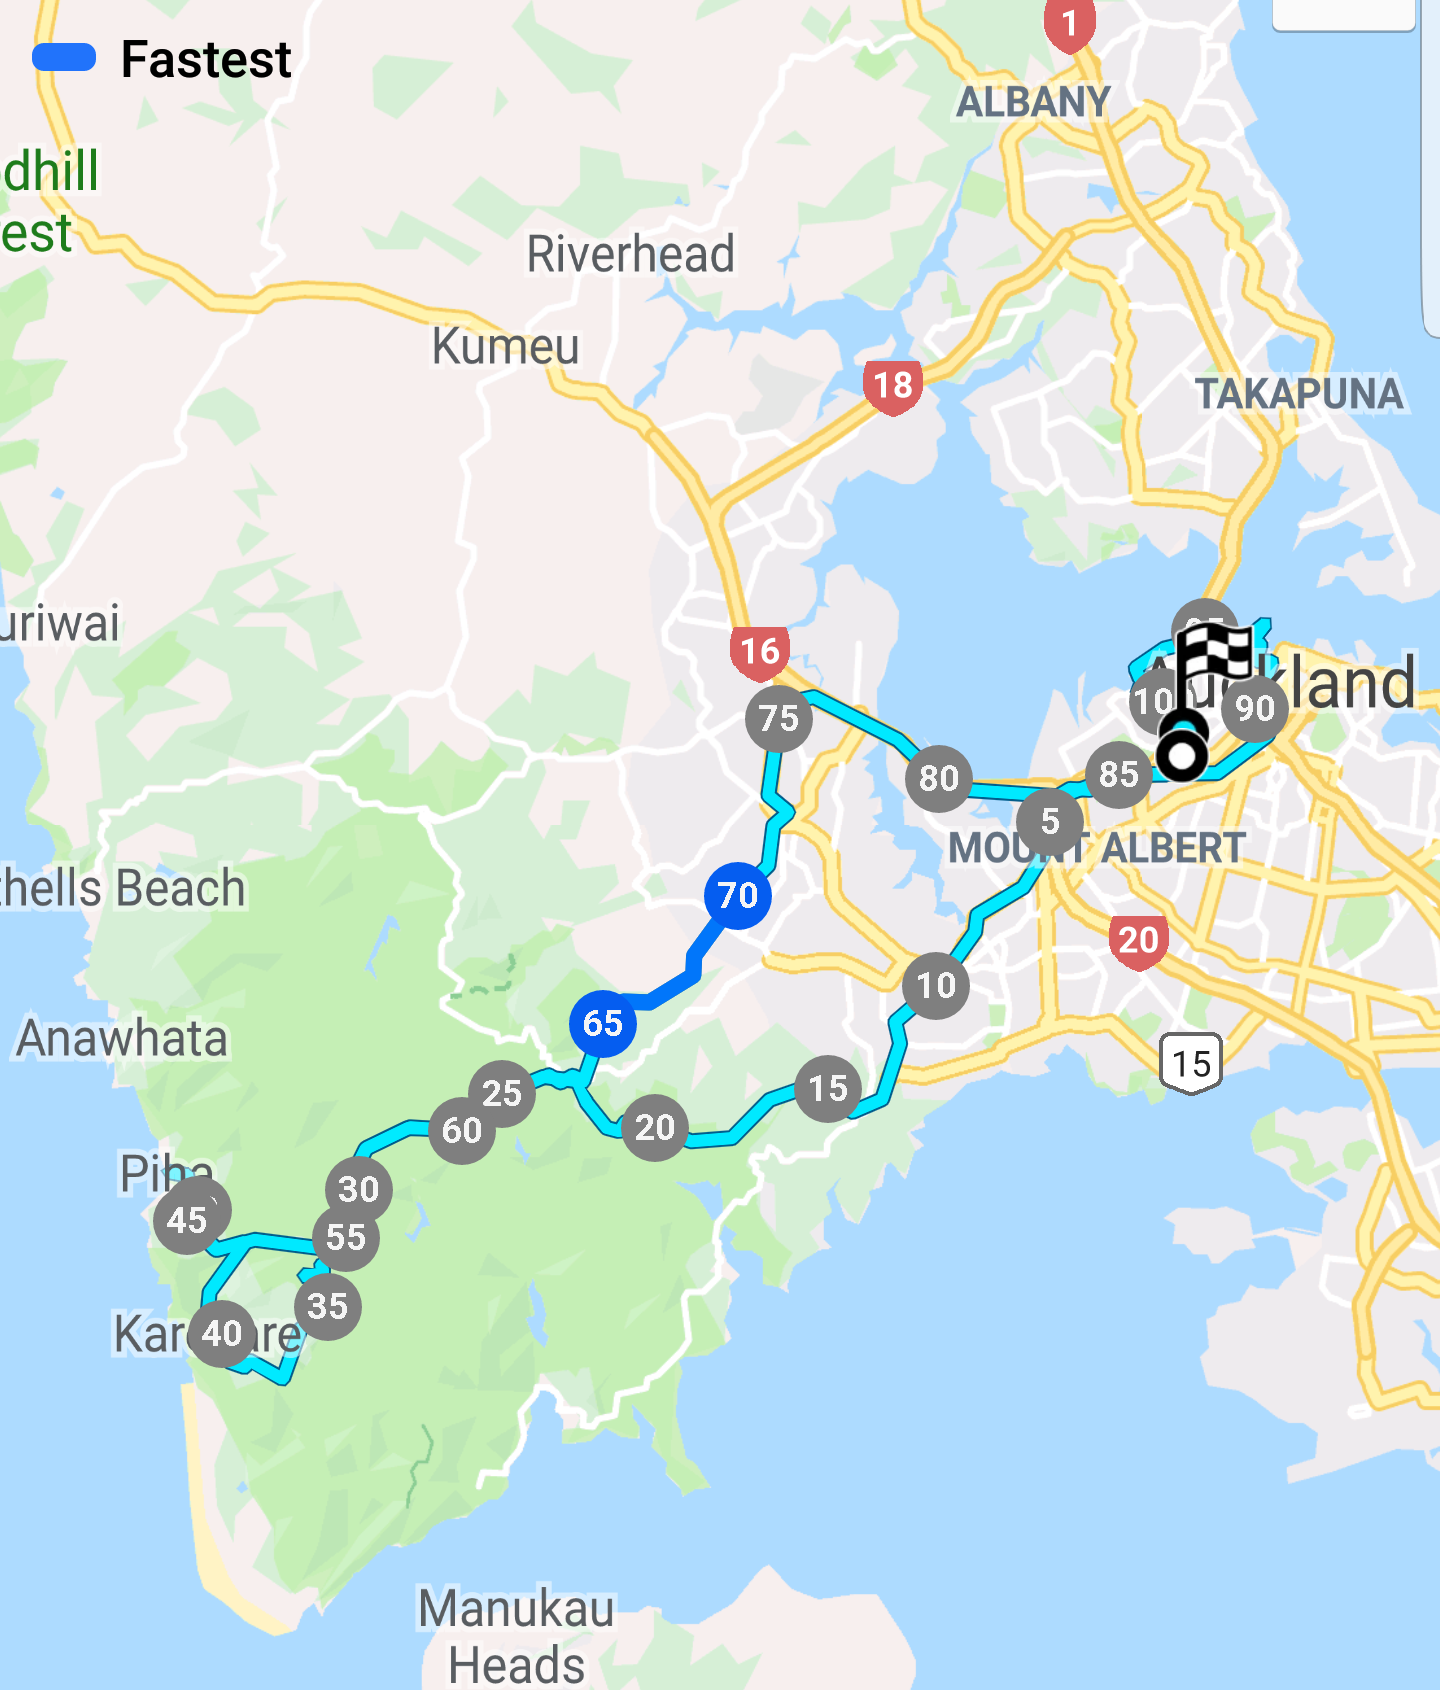 e-bike map.png